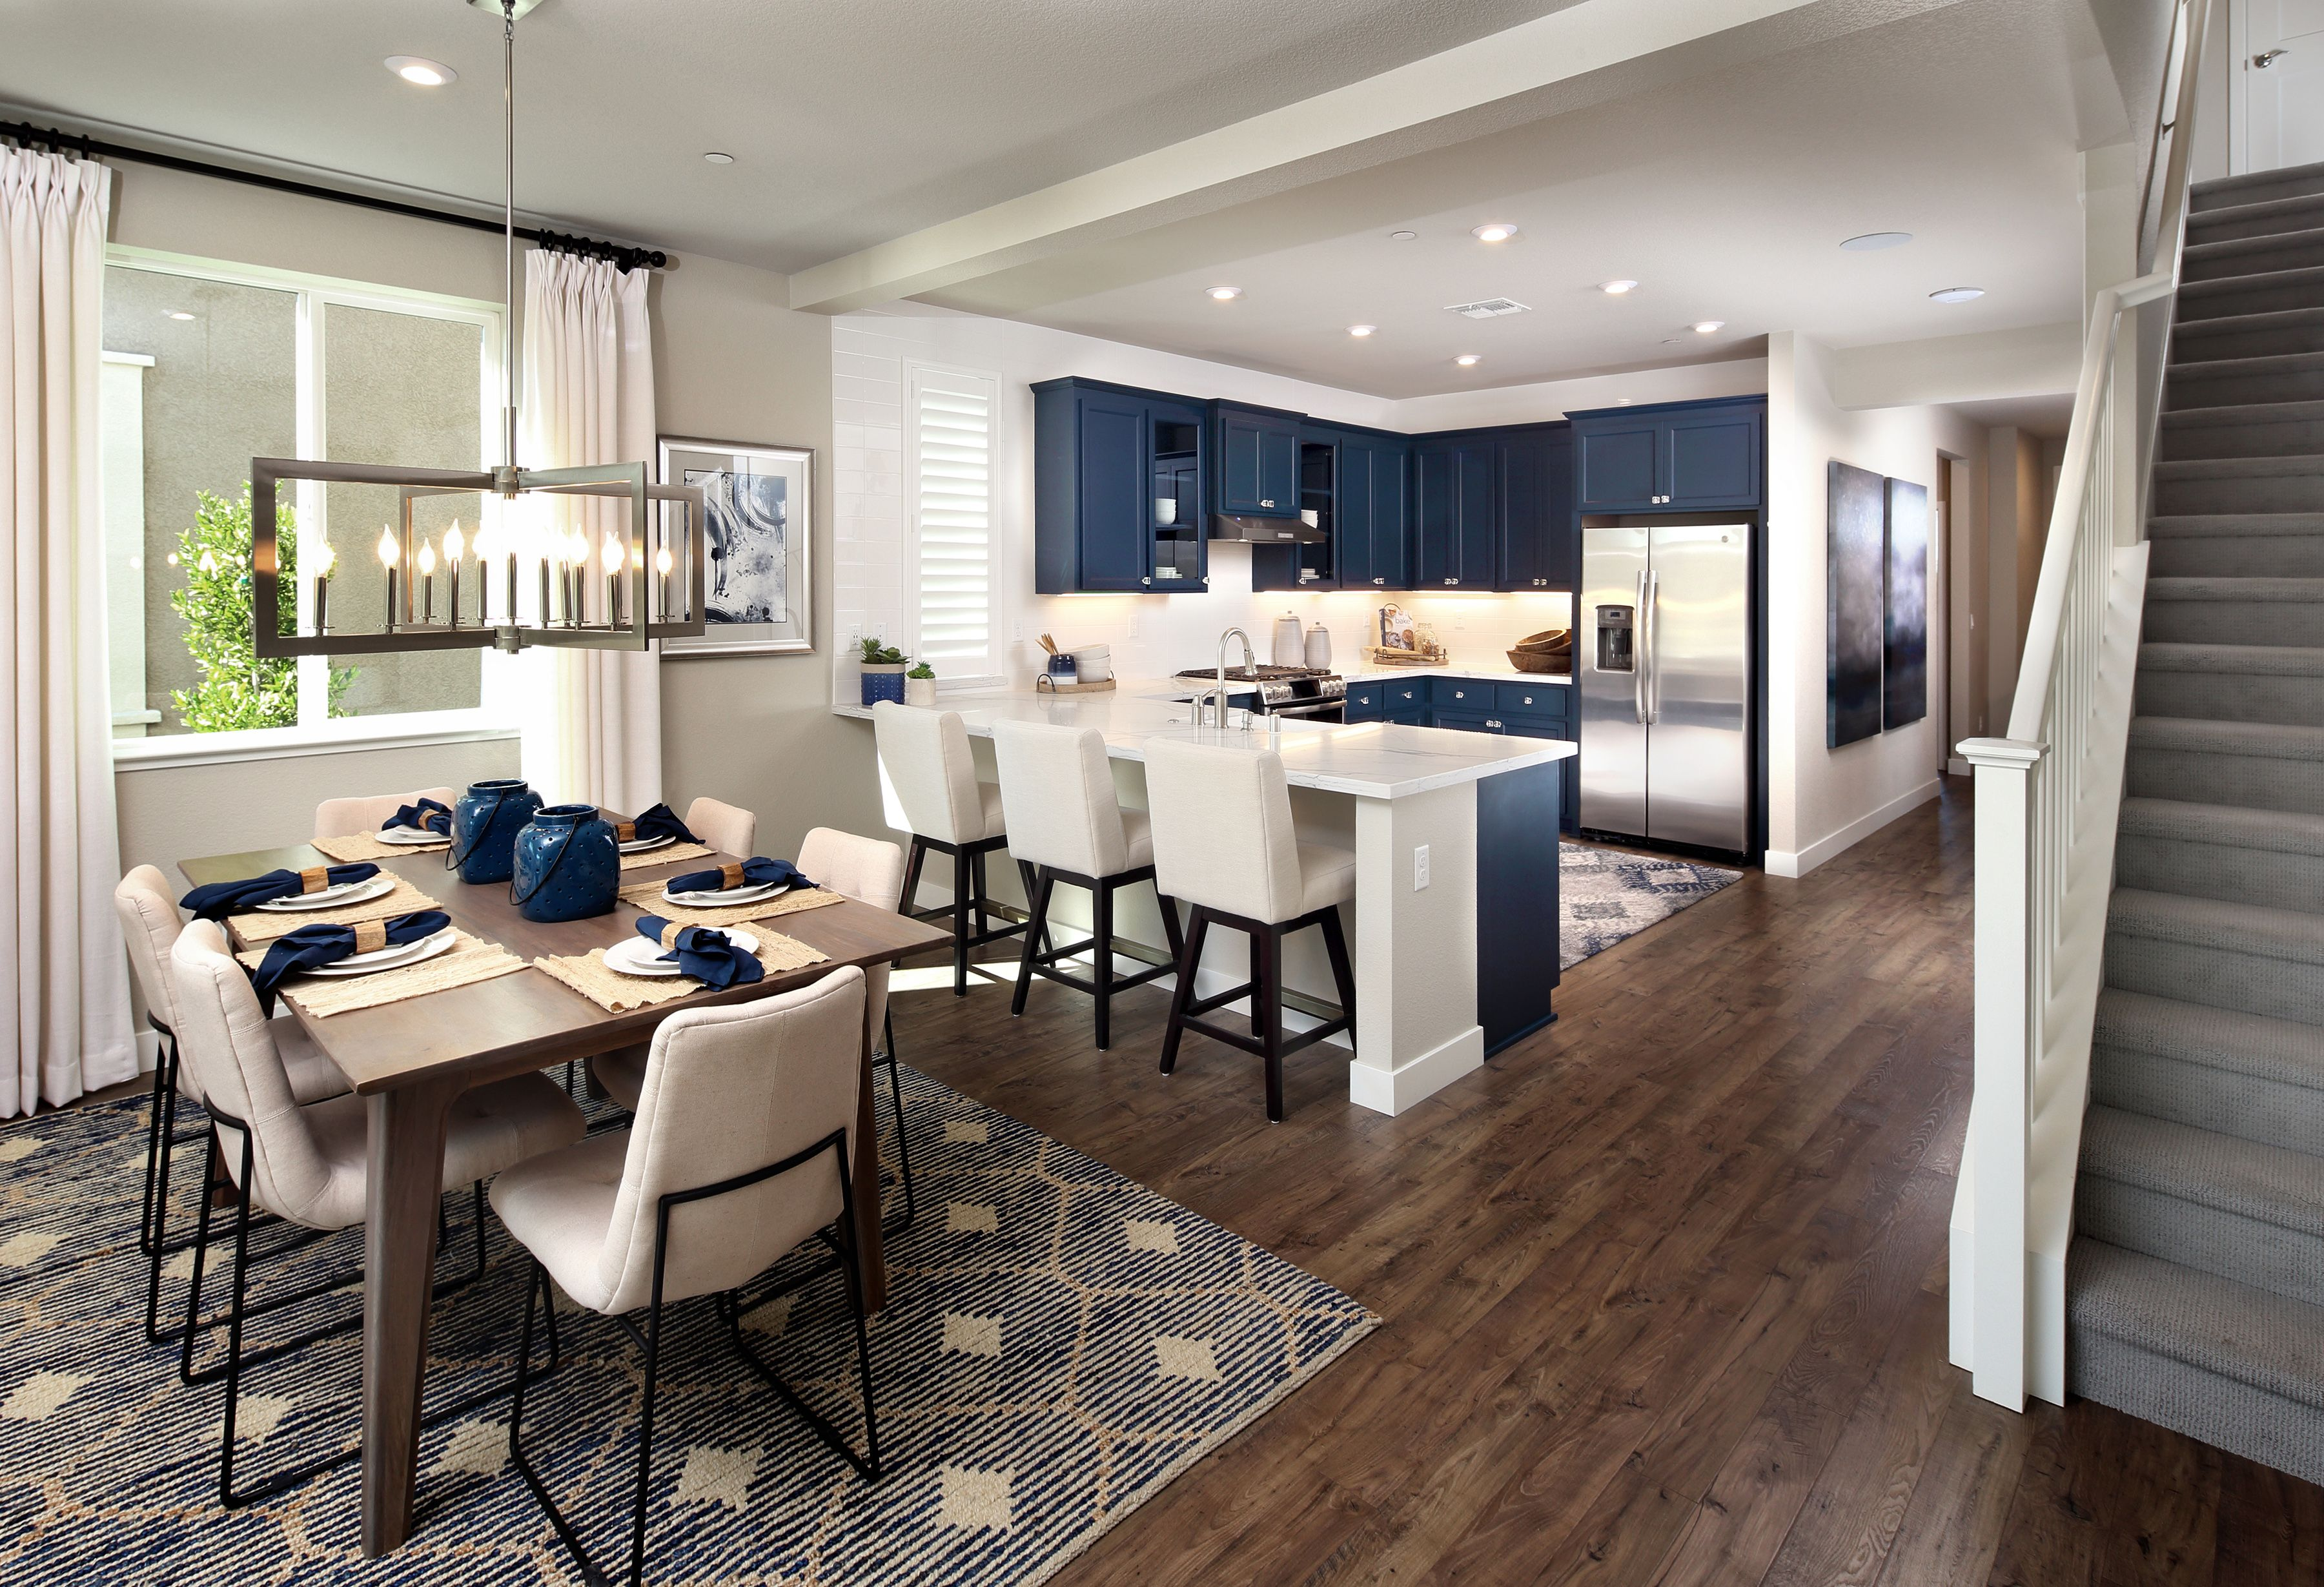 Carefully Crafted Just For You Kitchen Diningroom Staircase Blue Dreamhome Dreamkitchen Sacramentohomes Sacramento Home California Living New Homes